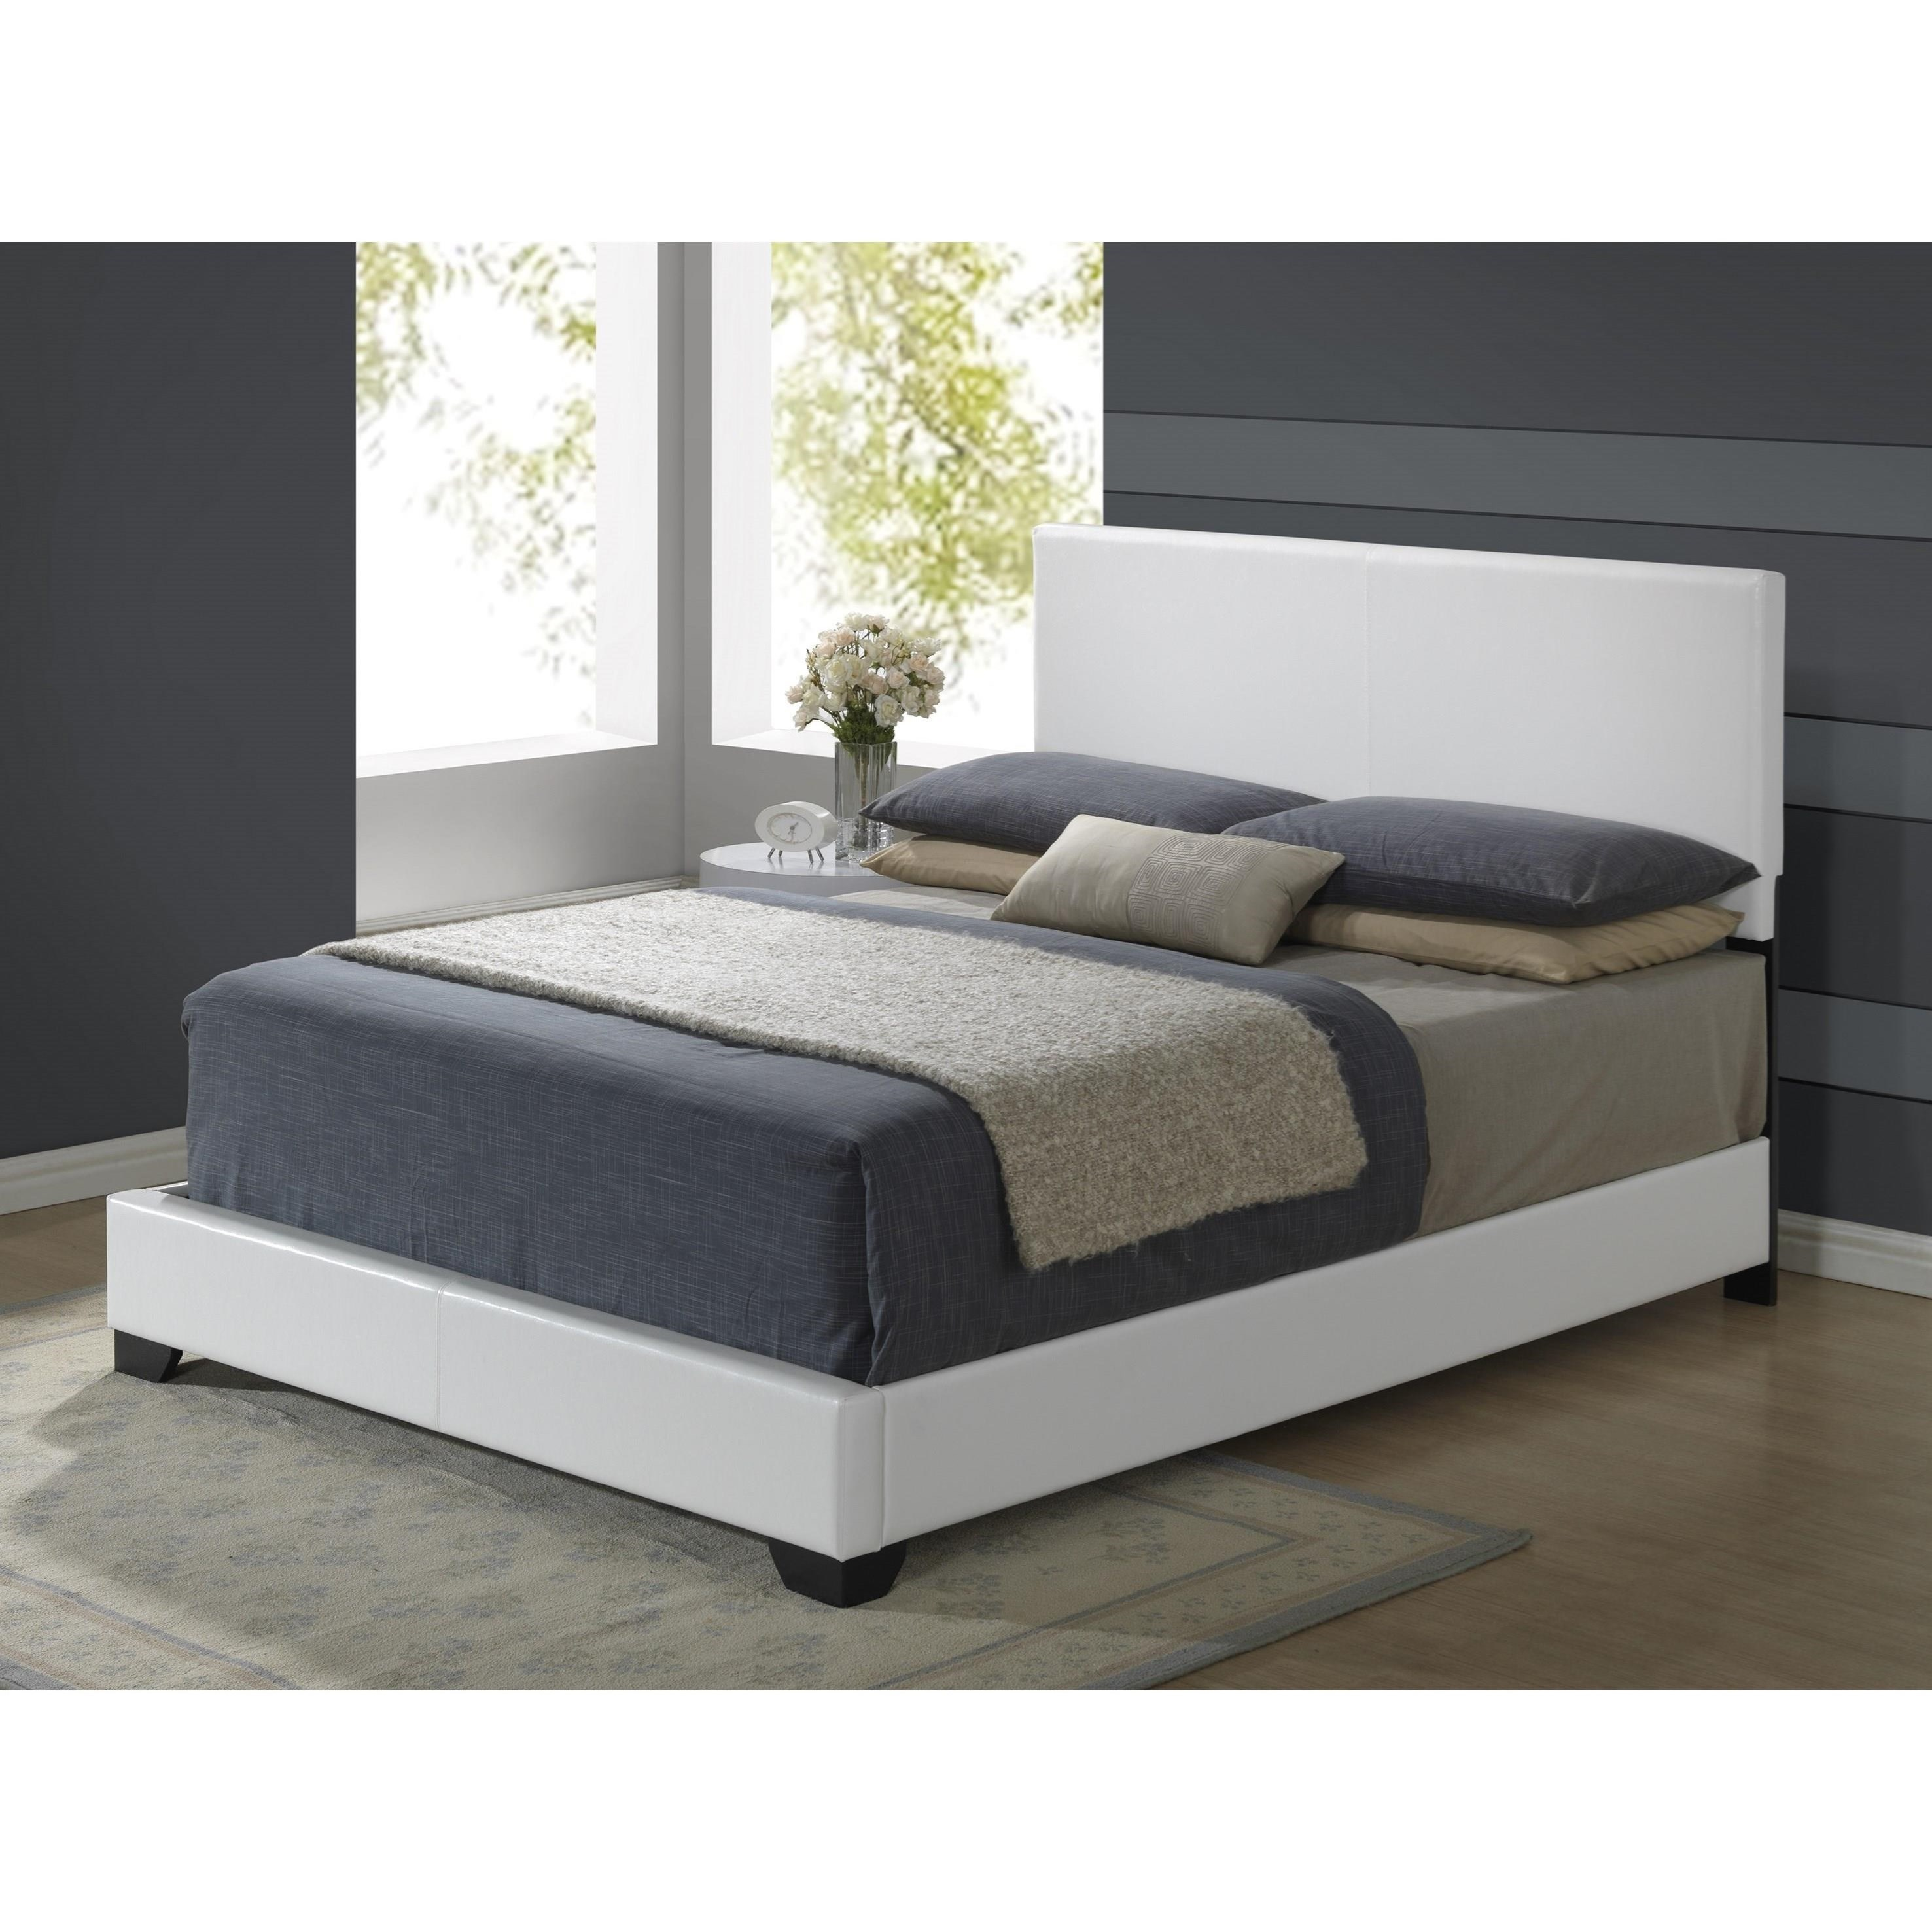 8103 Upholstered Queen Bed by Global Furniture at Nassau Furniture and Mattress